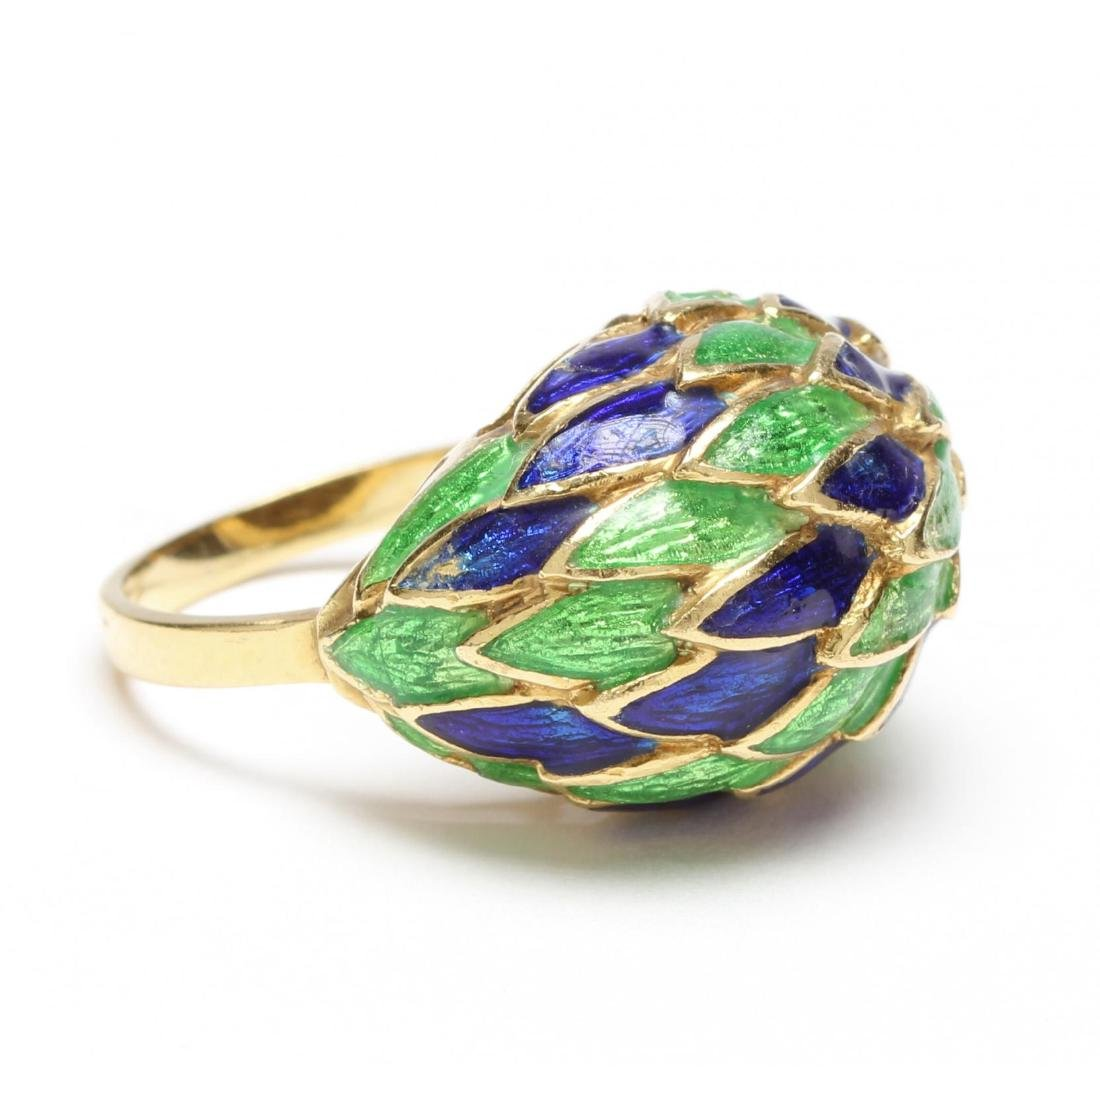 18KT Gold and Polychrome Enamel Ring, Seymour Moss